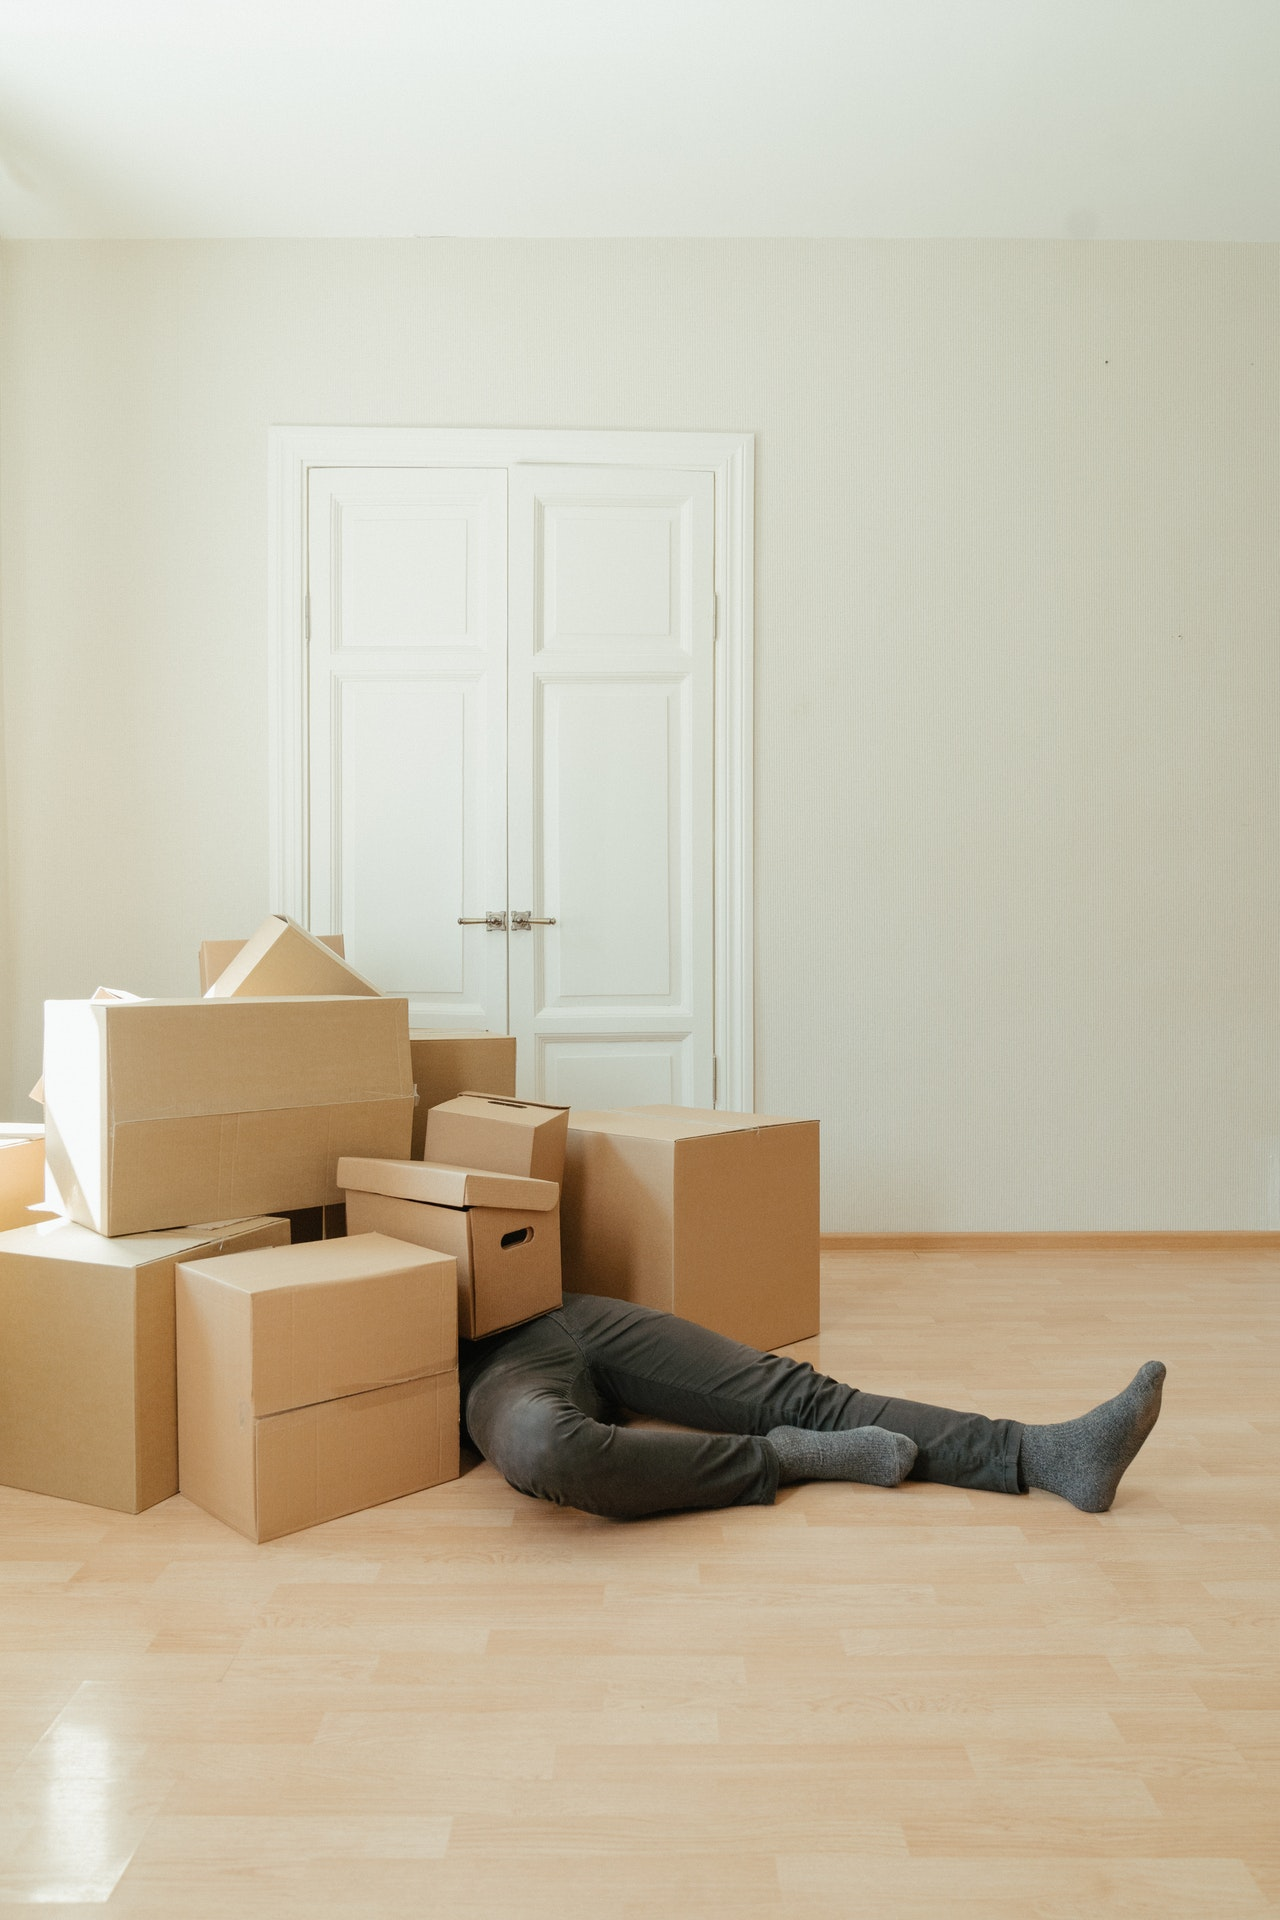 Home junk removal is stressful, but this can be alleviated when one uses a professional organizer